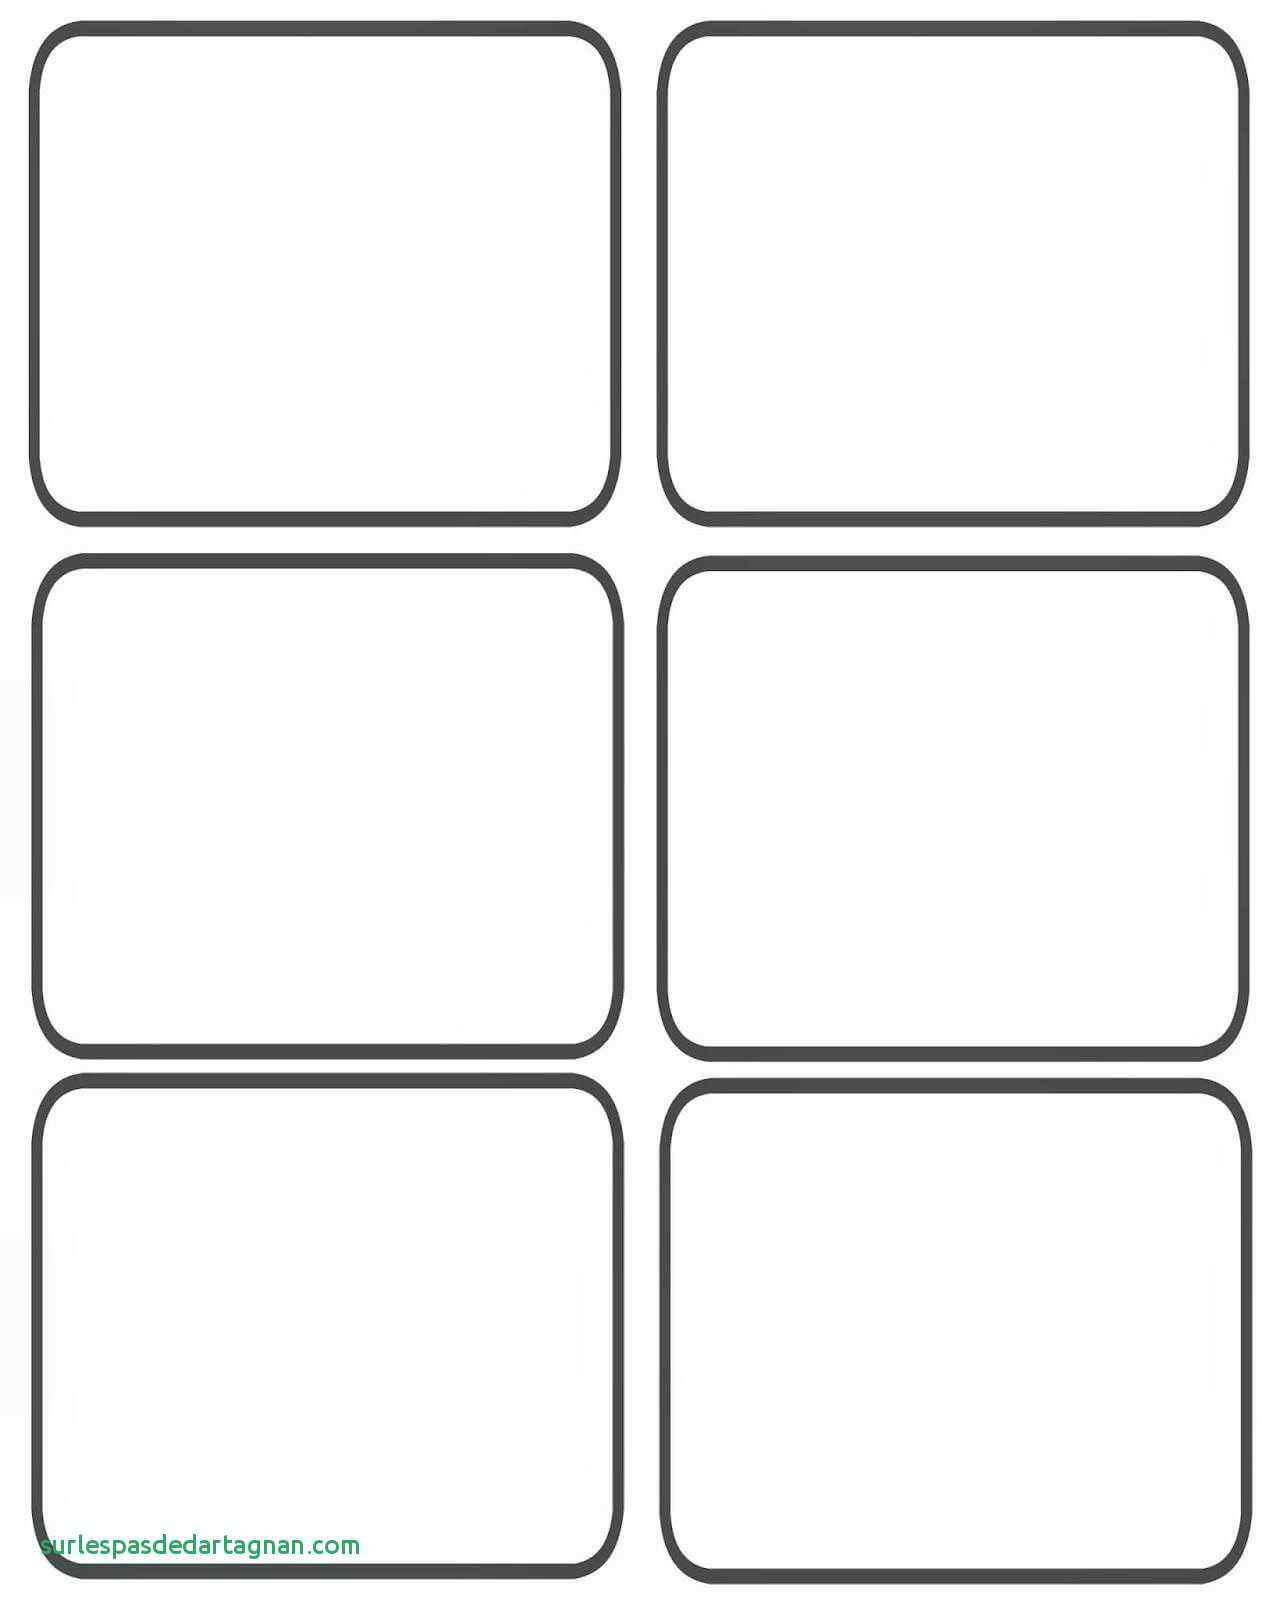 17 Free Printable Playing Cards | Kittybabylove Pertaining To Free Printable Playing Cards Template